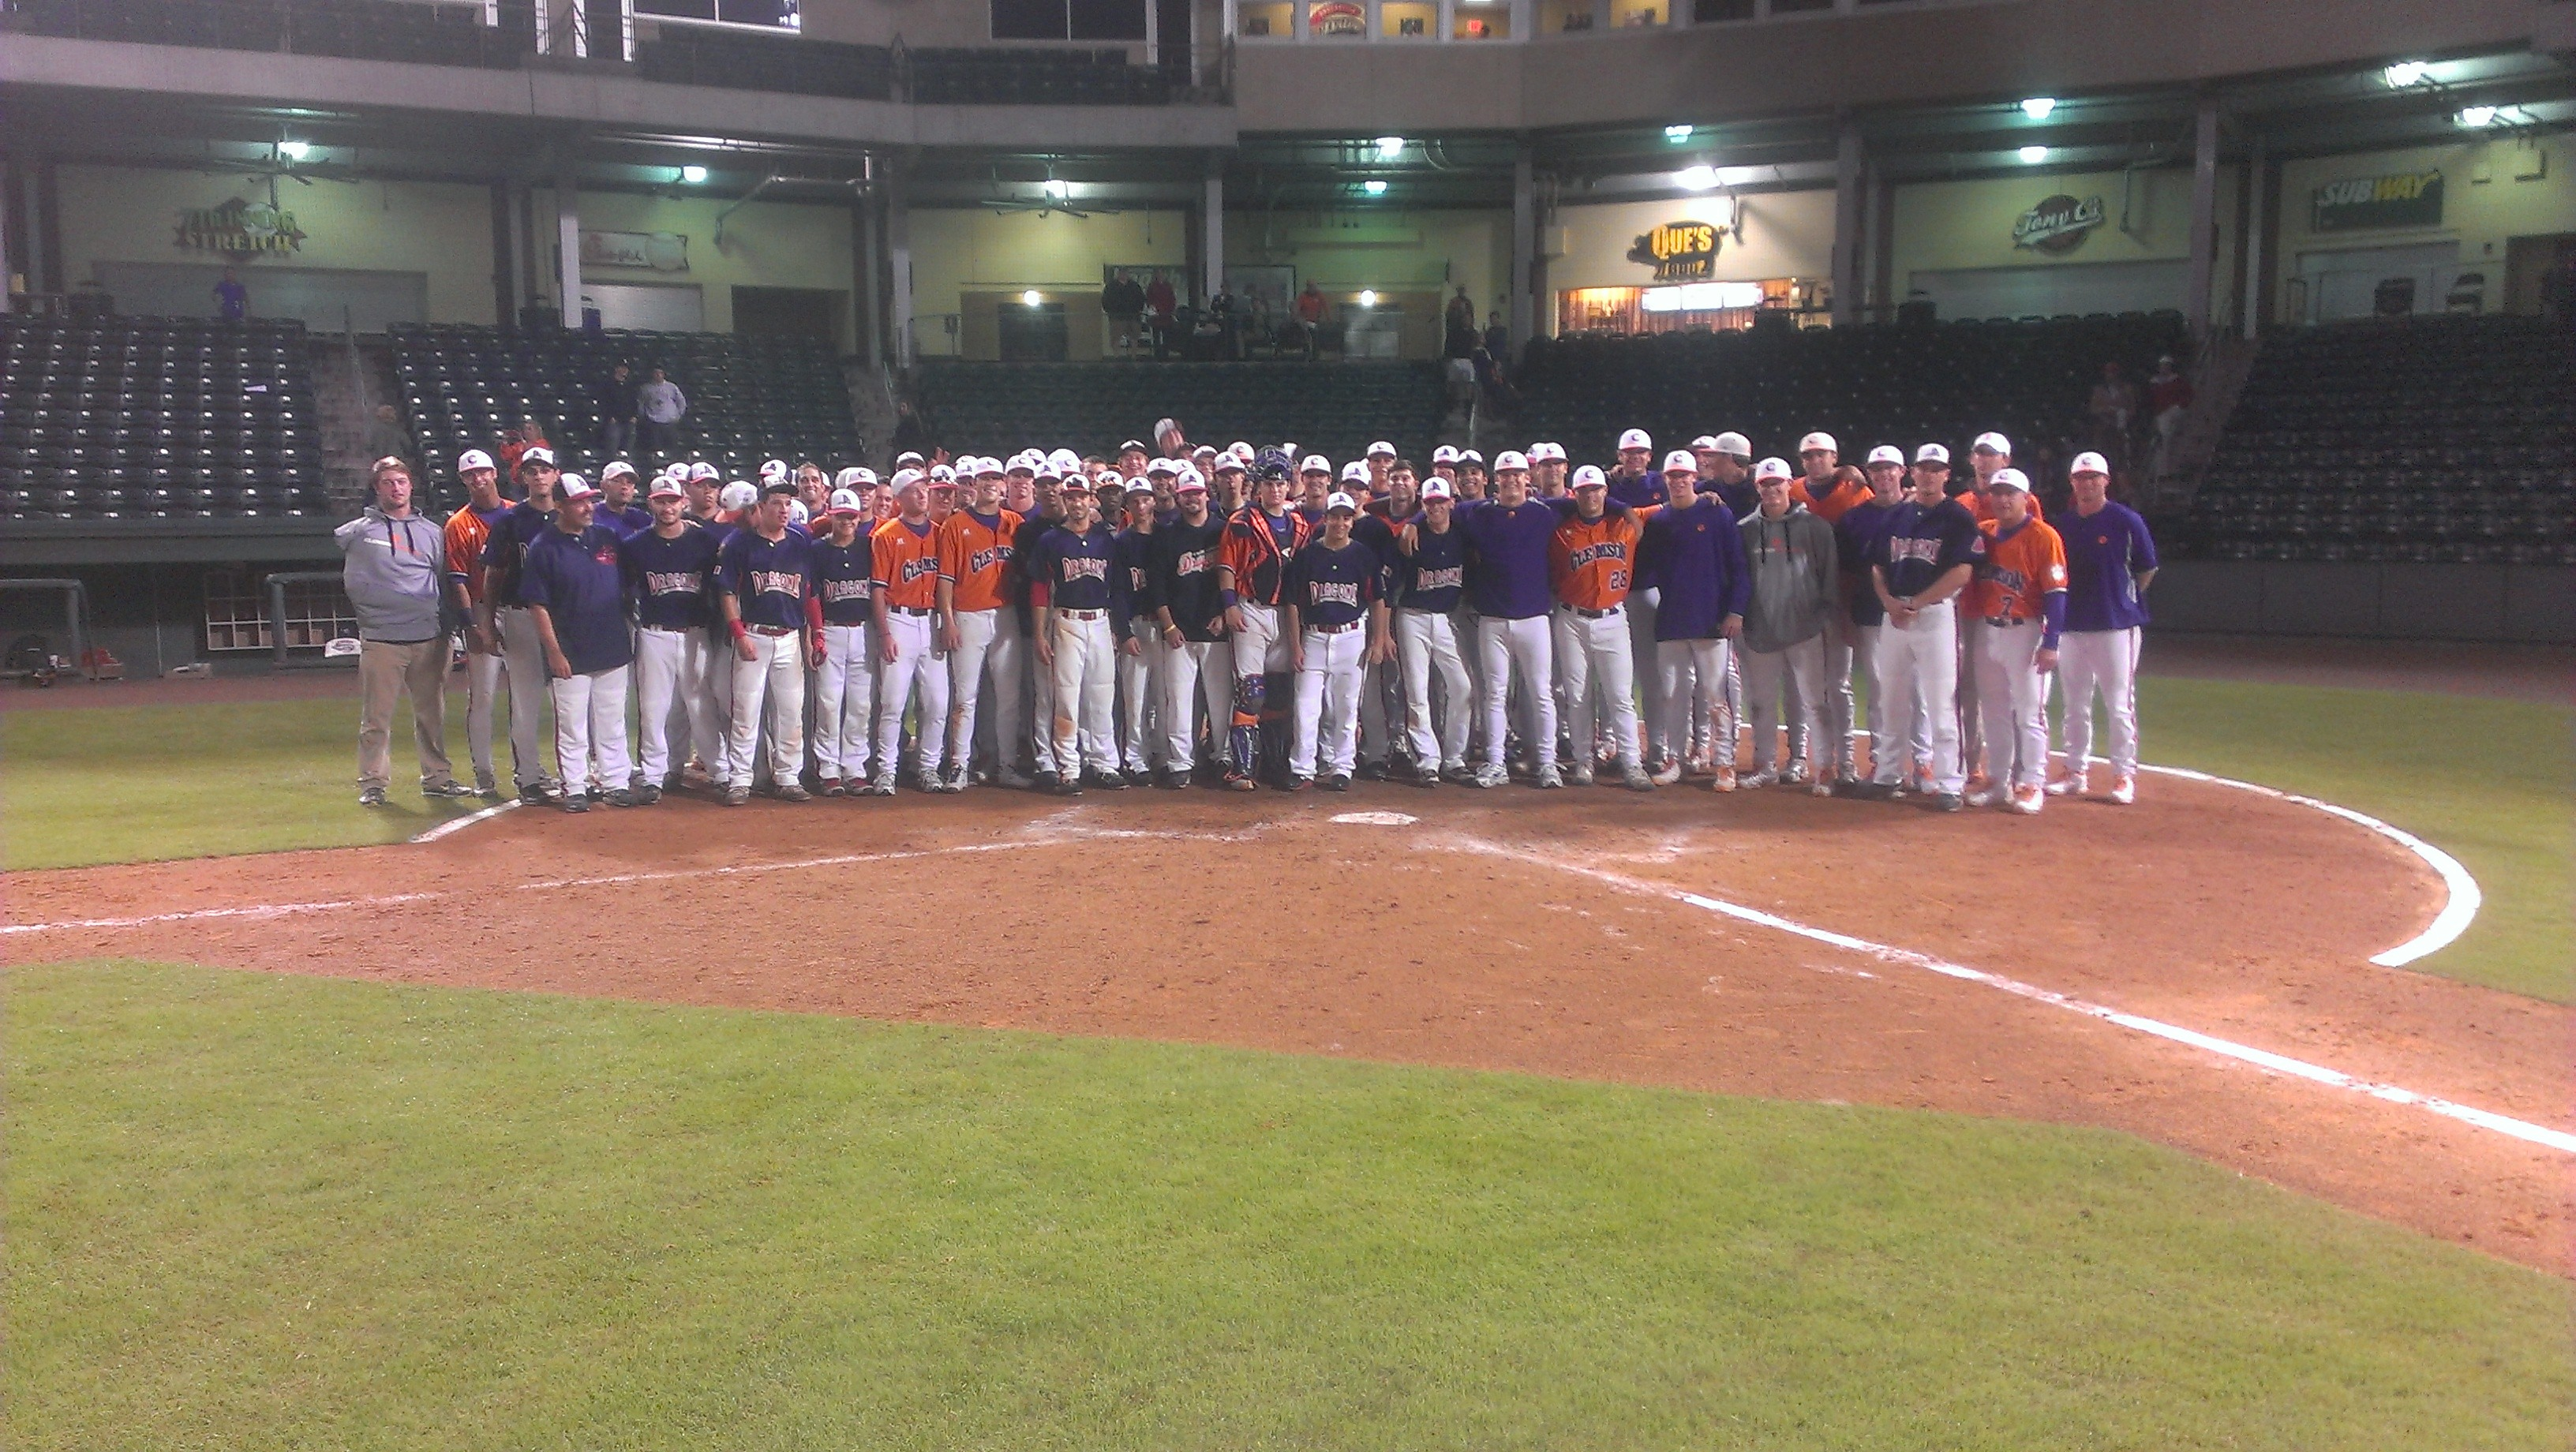 Tigers Top LaFleche 22-2 Thursday Night at Fluor Field